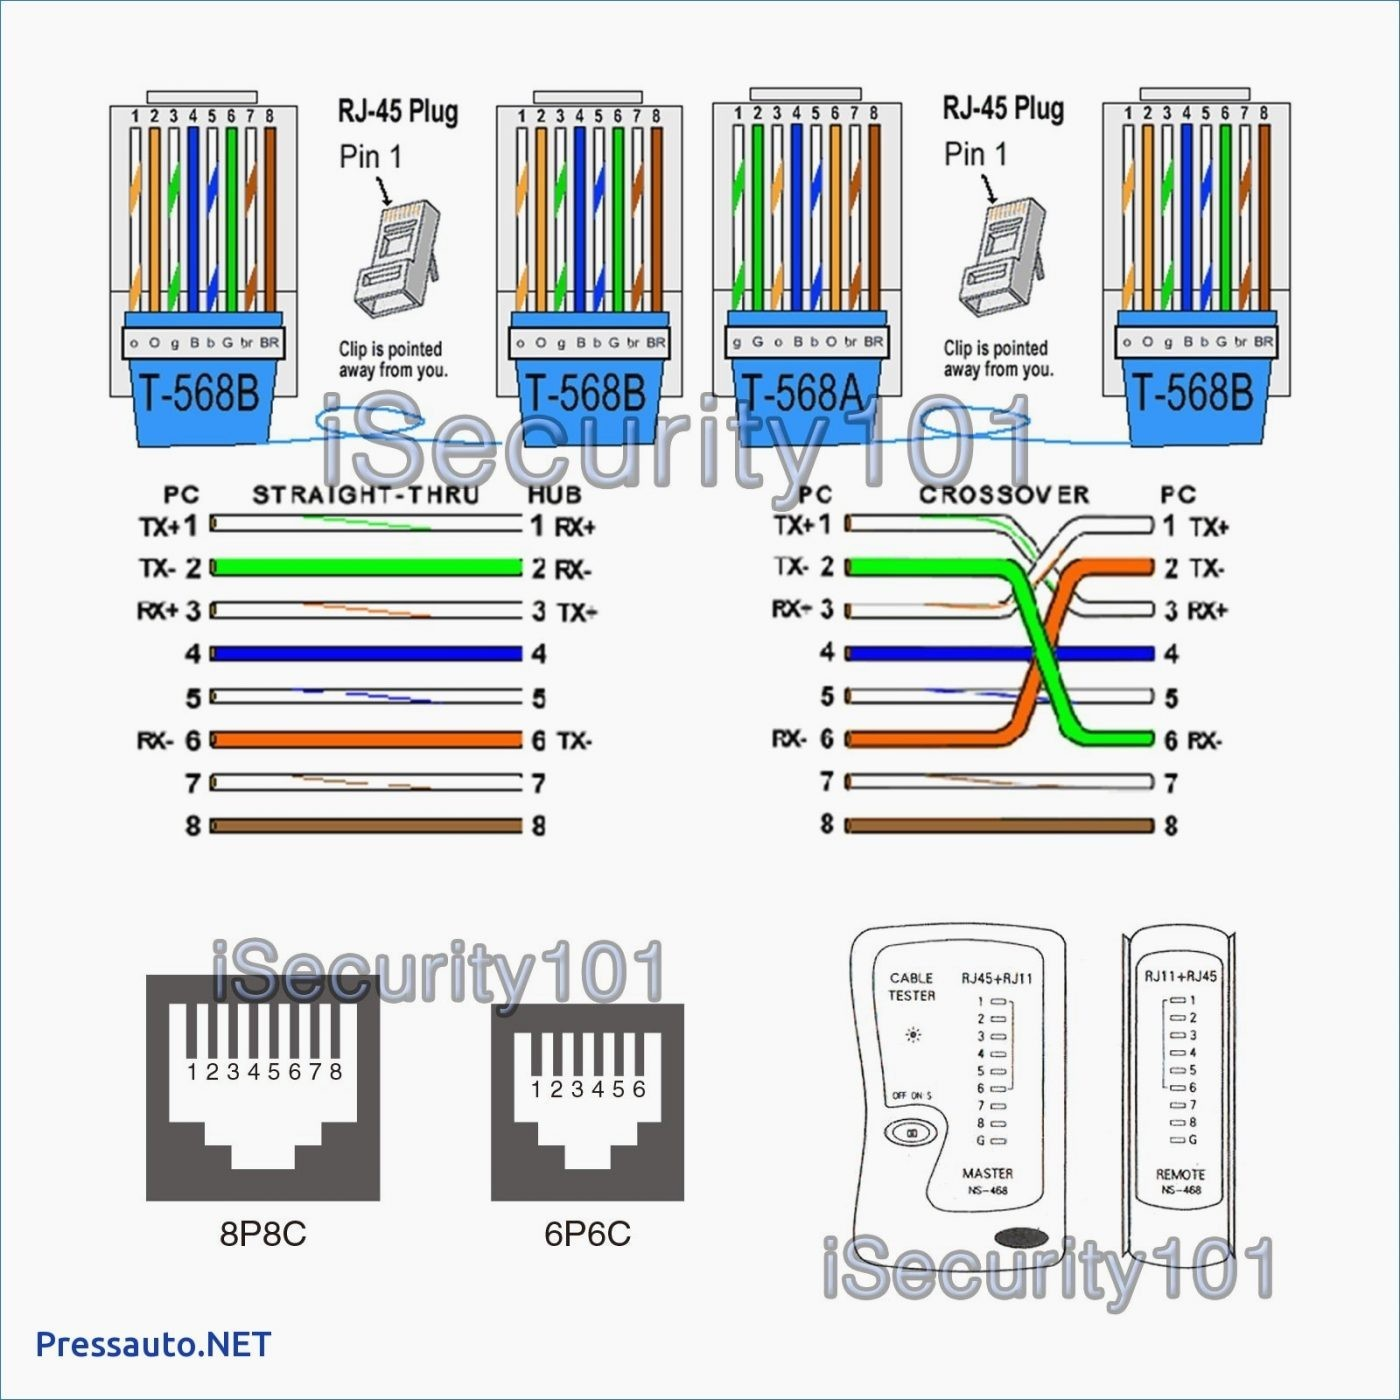 Cat6e Cable Wiring Diagram - Wiring Diagrams Databaselaccolade-lescours.fr